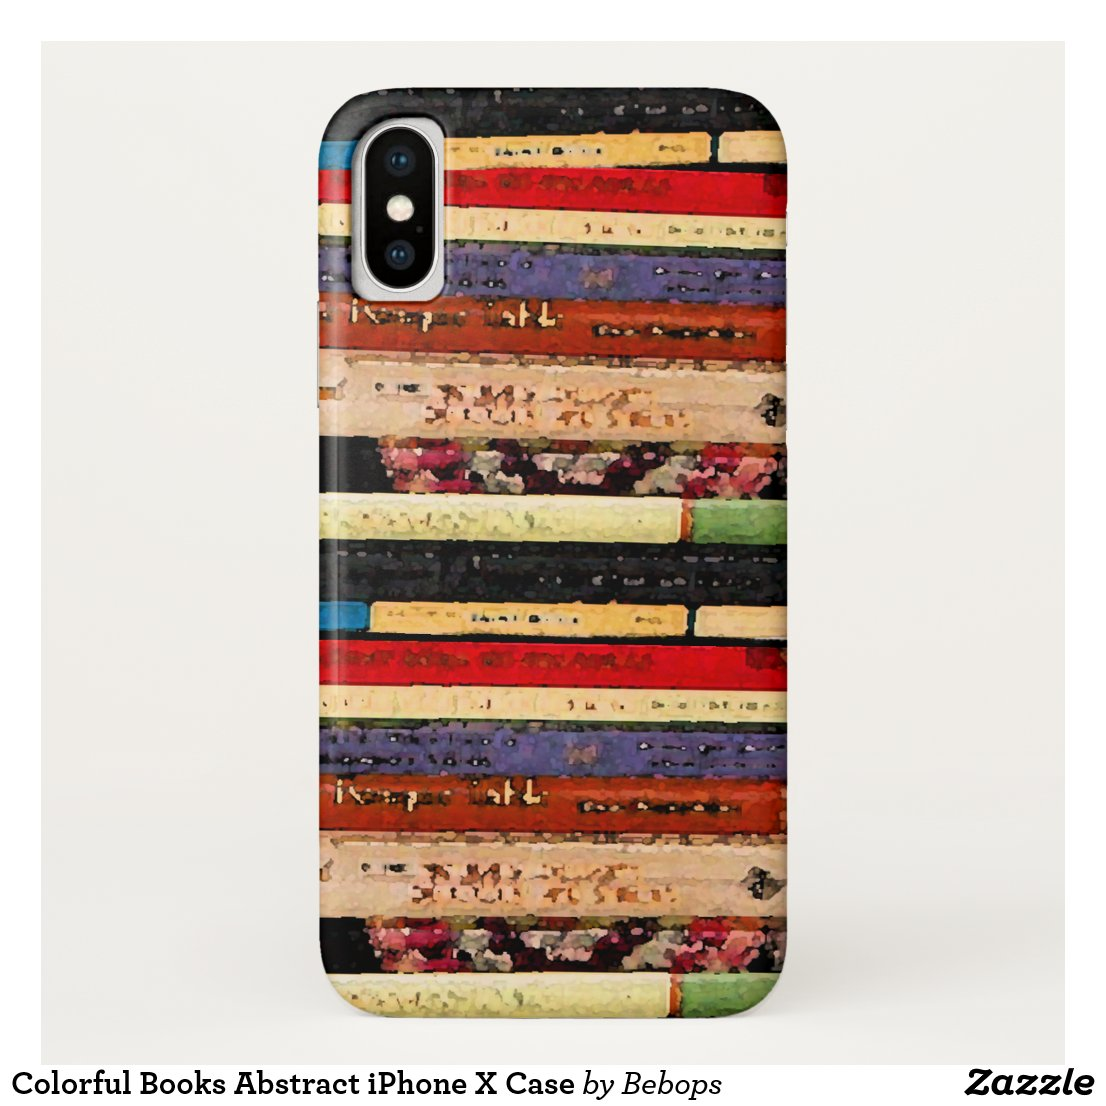 Colorful Books Abstract iPhone X Case